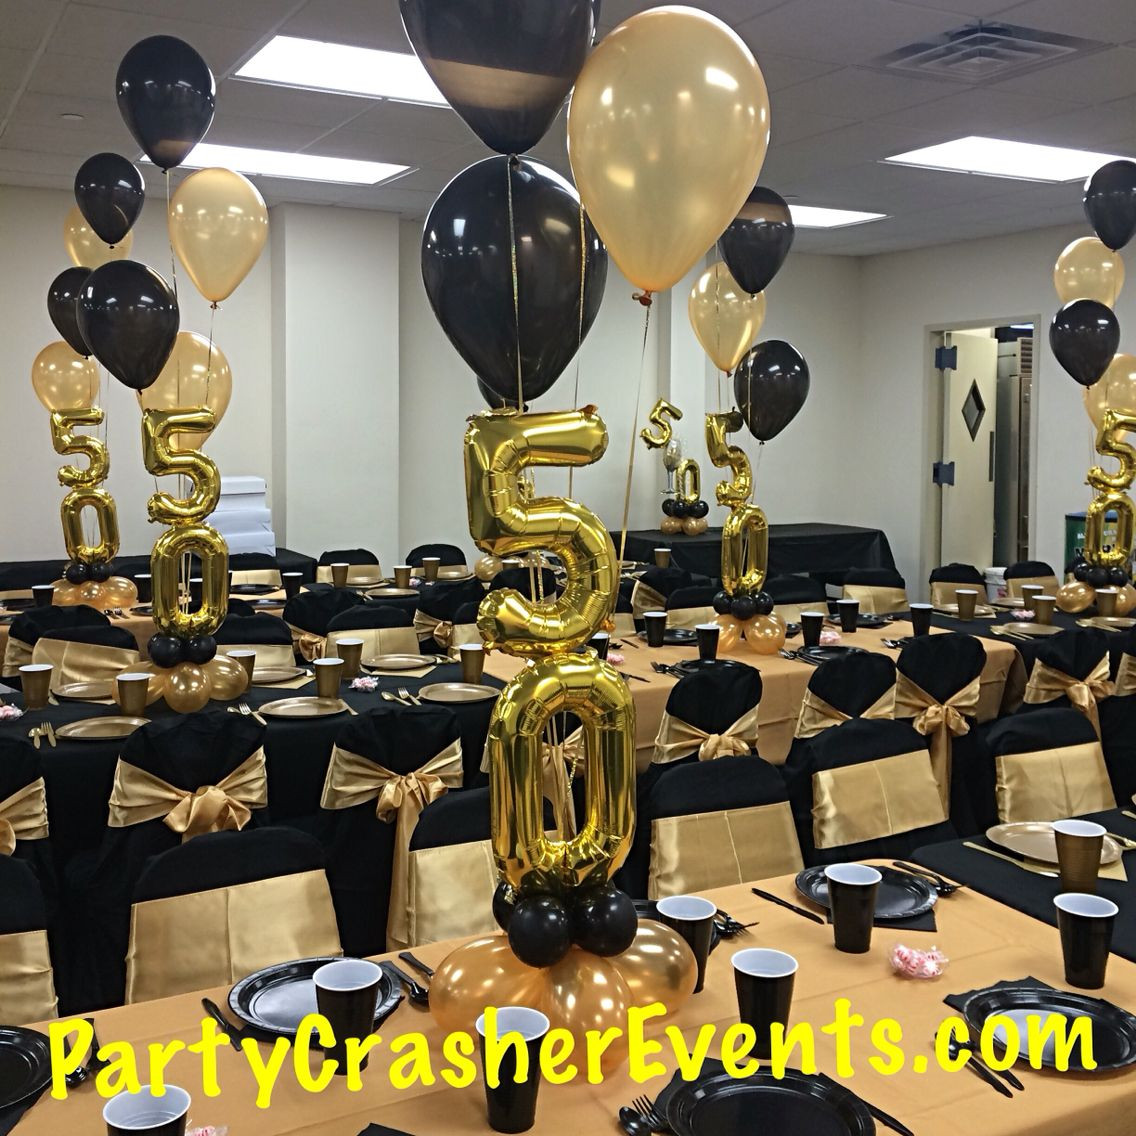 50th birthday party ideas ; pin-by-peter-lewis-on-30-year-old-birthday-party-ideas-themes-design-of-50th-birthday-party-decorations-of-50th-birthday-party-decorations